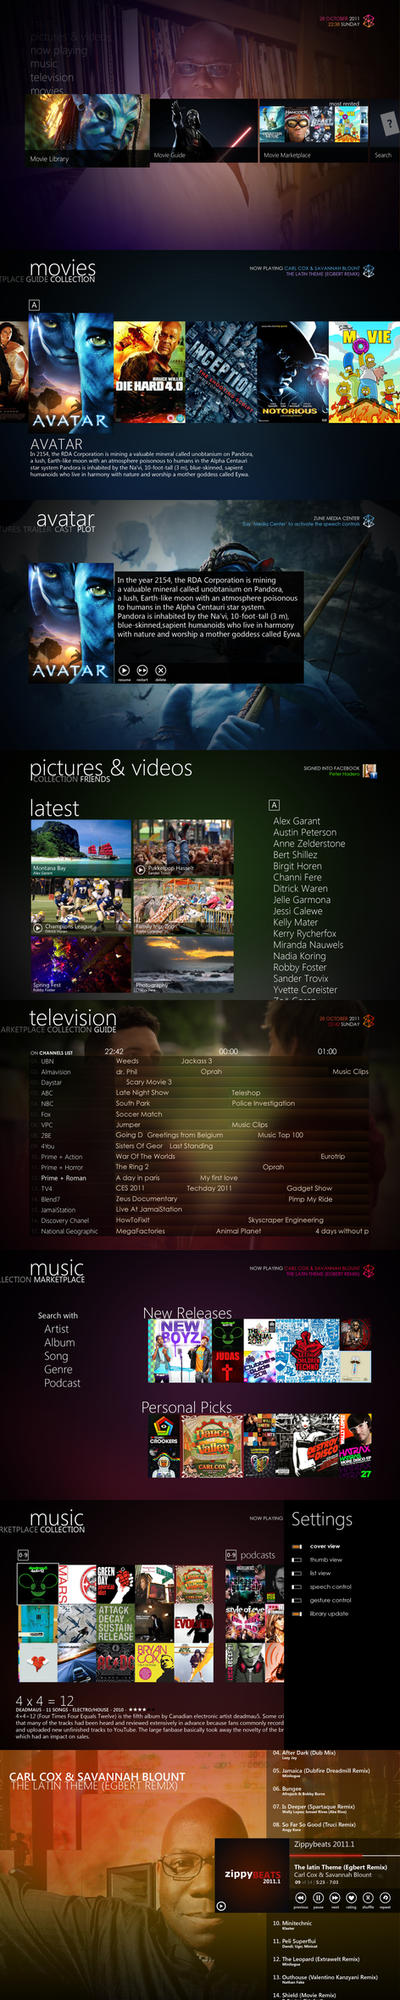 Zune Media Center v2.7 by Bonkietje